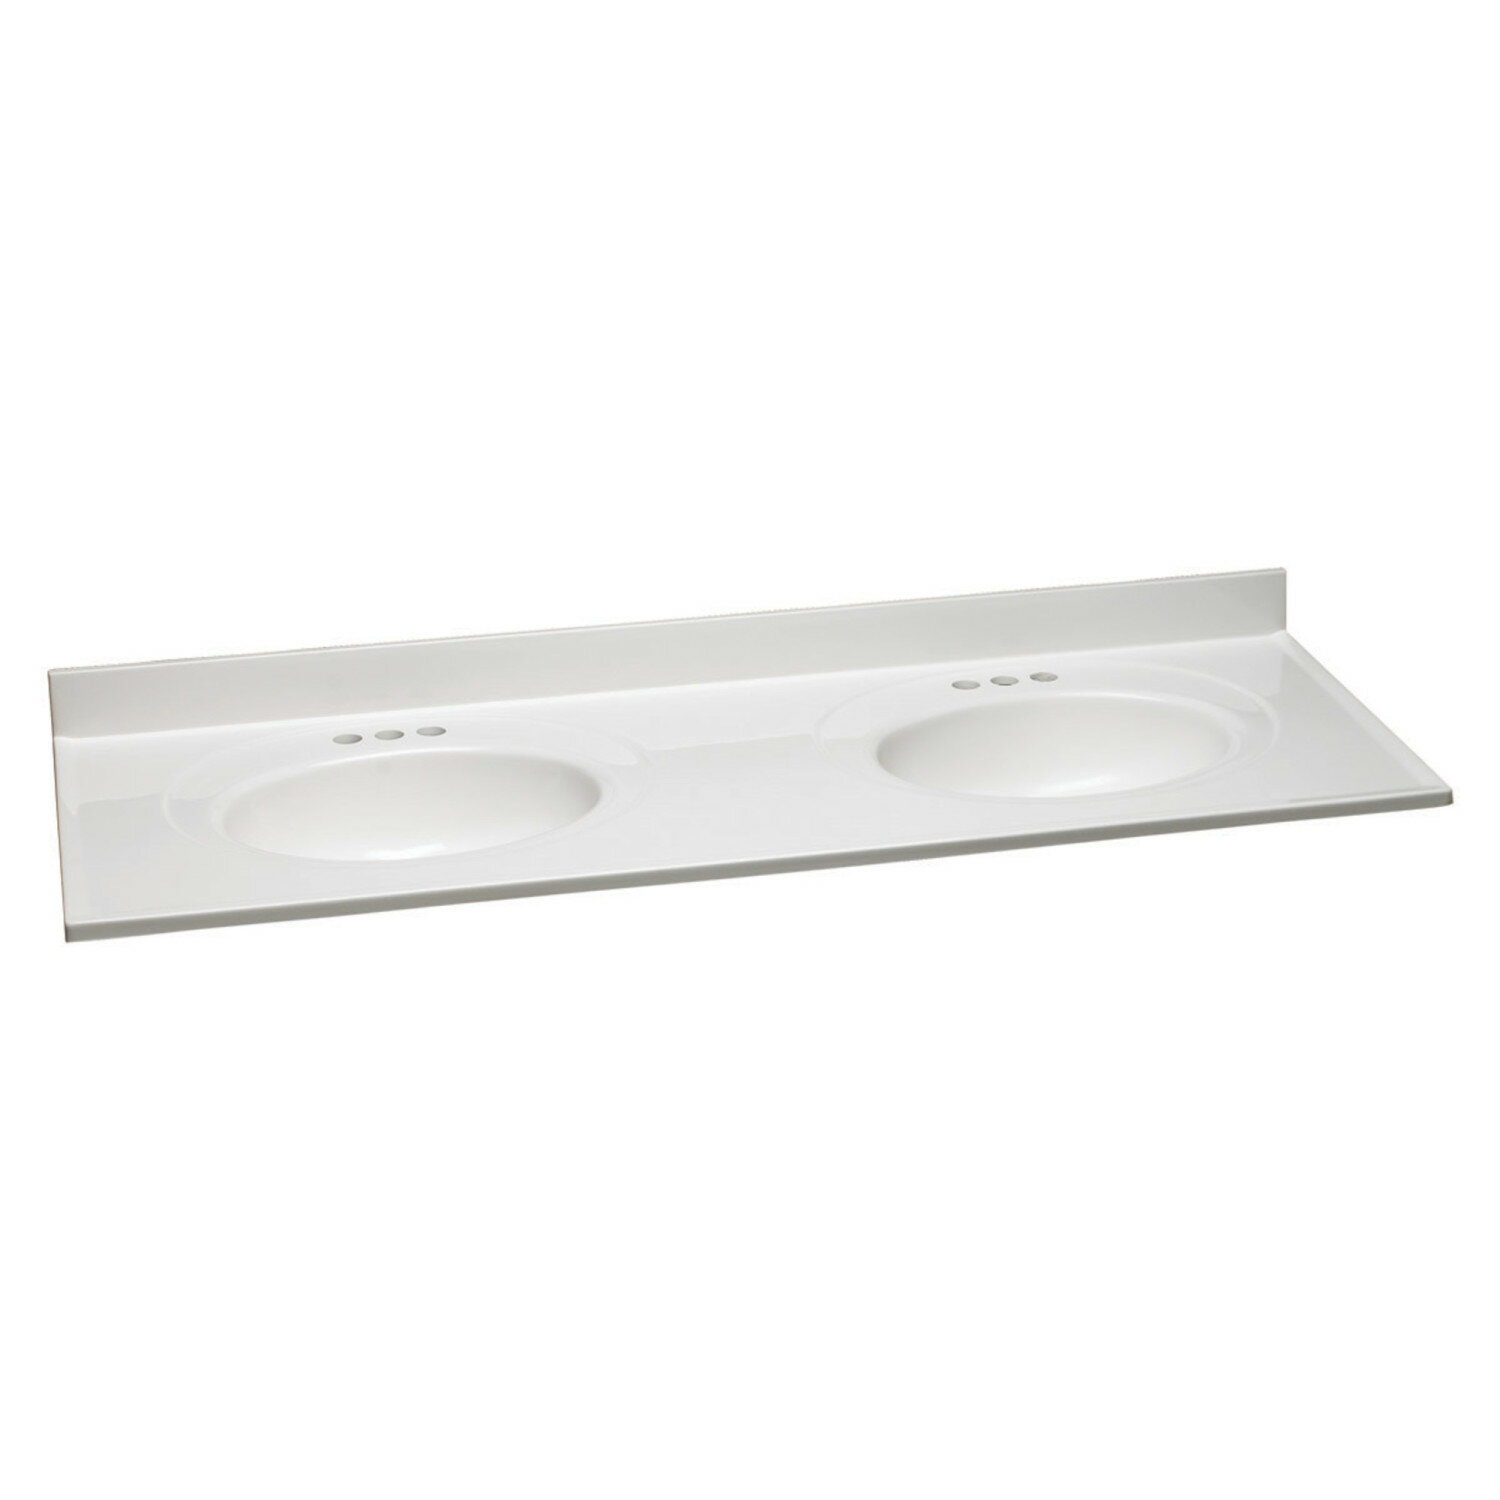 Design House 61 Double Bathroom Vanity Top In Solid White With Sink Wayfair